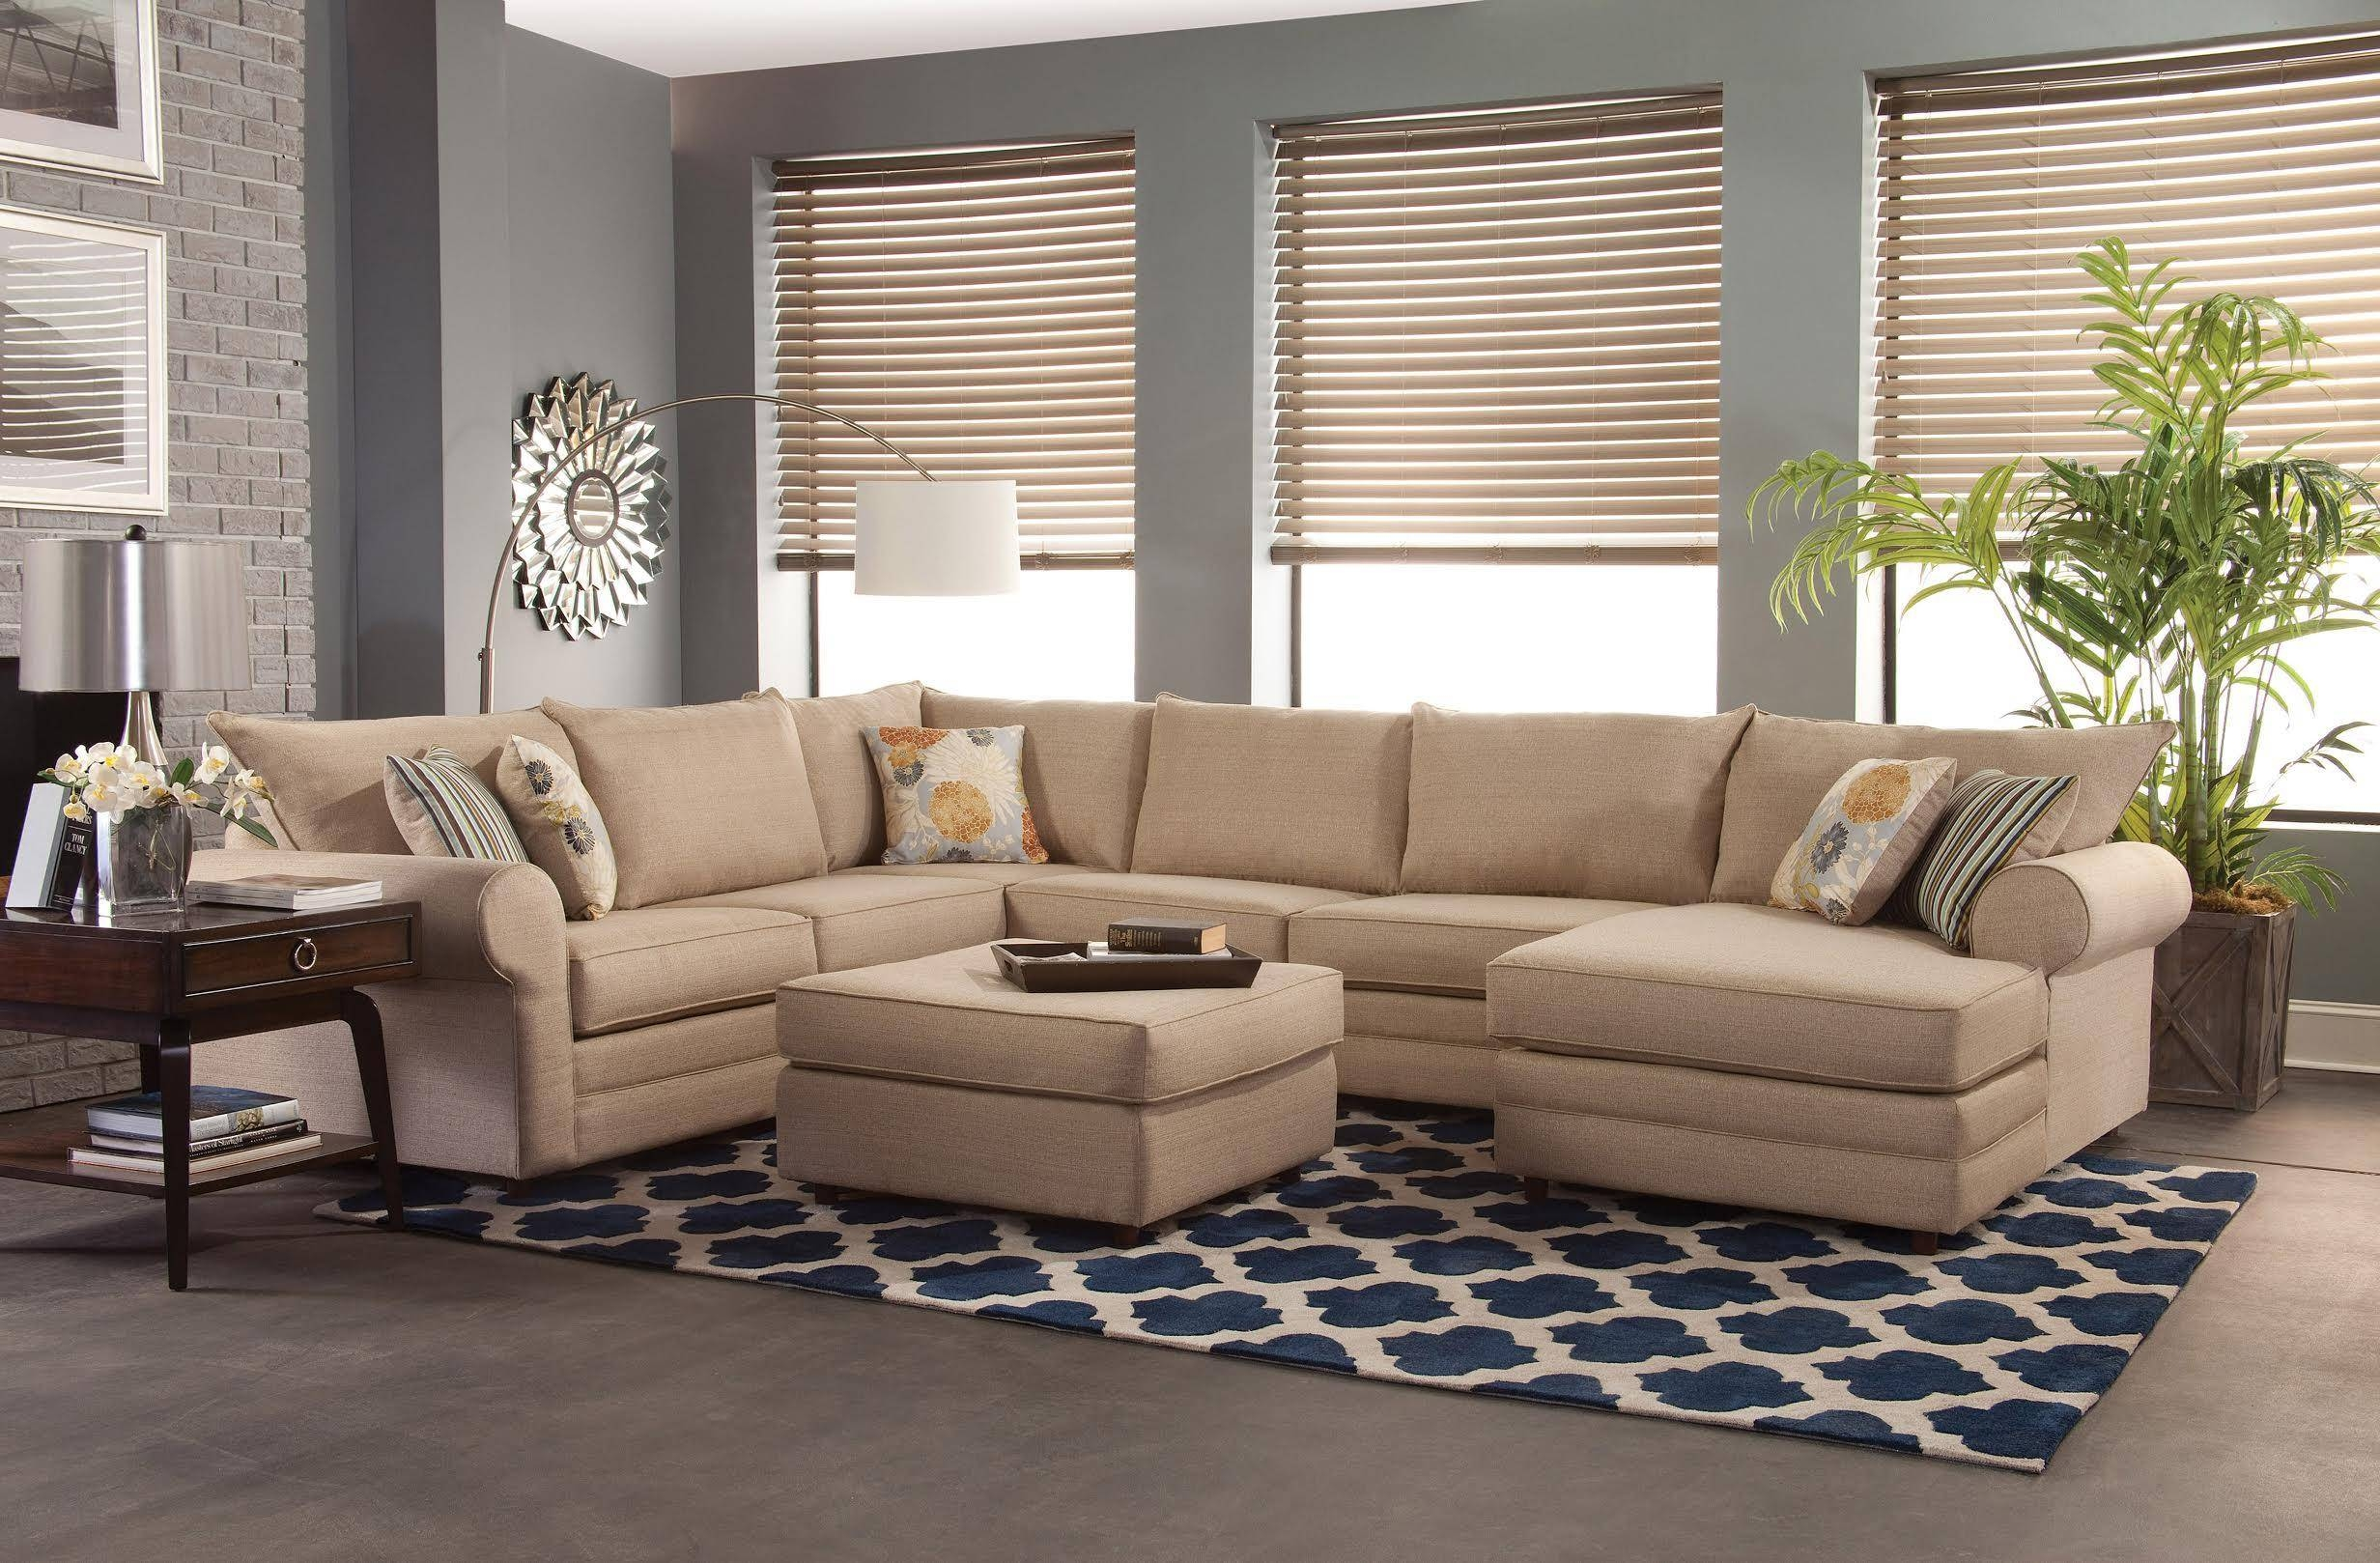 79 Exciting Large Sectional Sofas With Recliners Home Design | Hoozoo intended for Florence Large Sofas (Image 1 of 30)